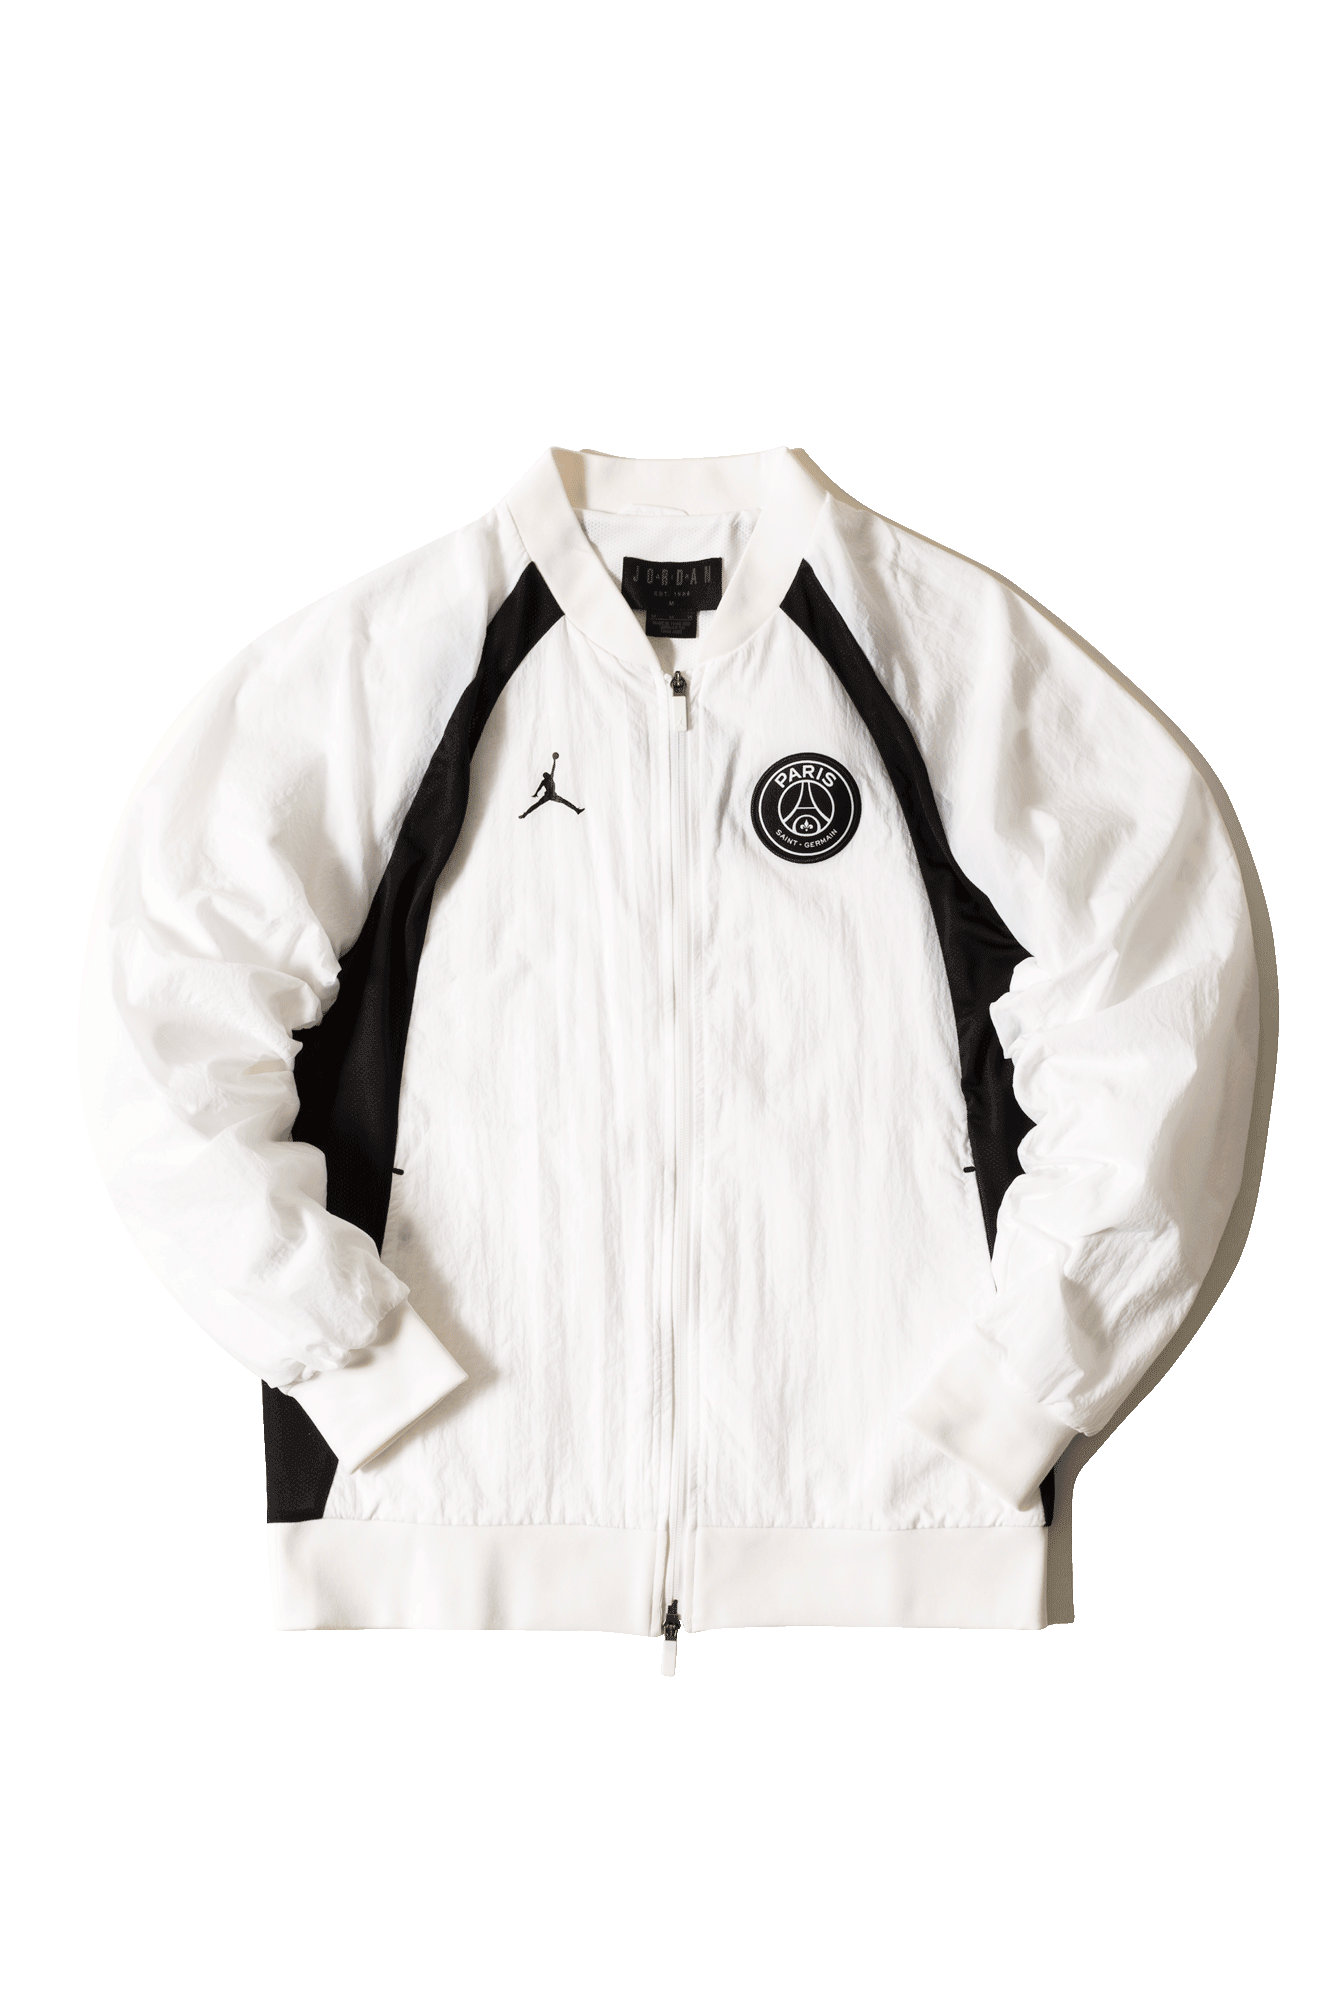 Air Jordan Coats & Jackets PSG AJ1 JKT White BQ4215-100#000#C0006#XS - One Block Down